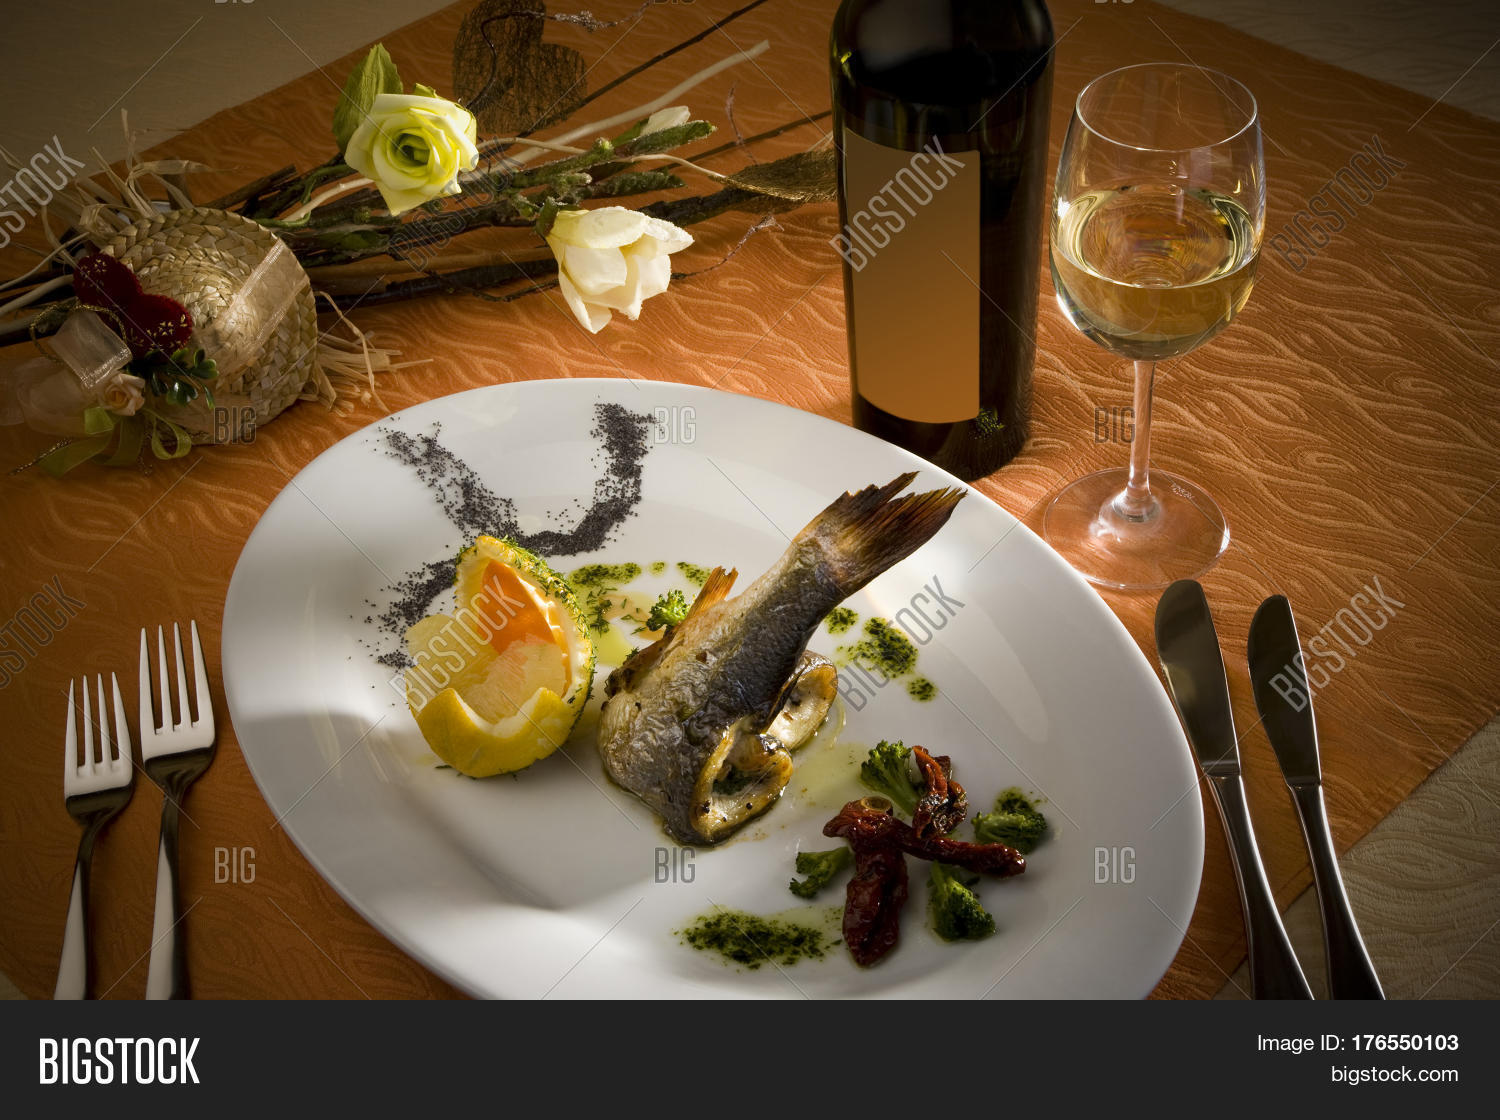 Exquisite dinner dish with fish and white wine stock photo for White wine with fish